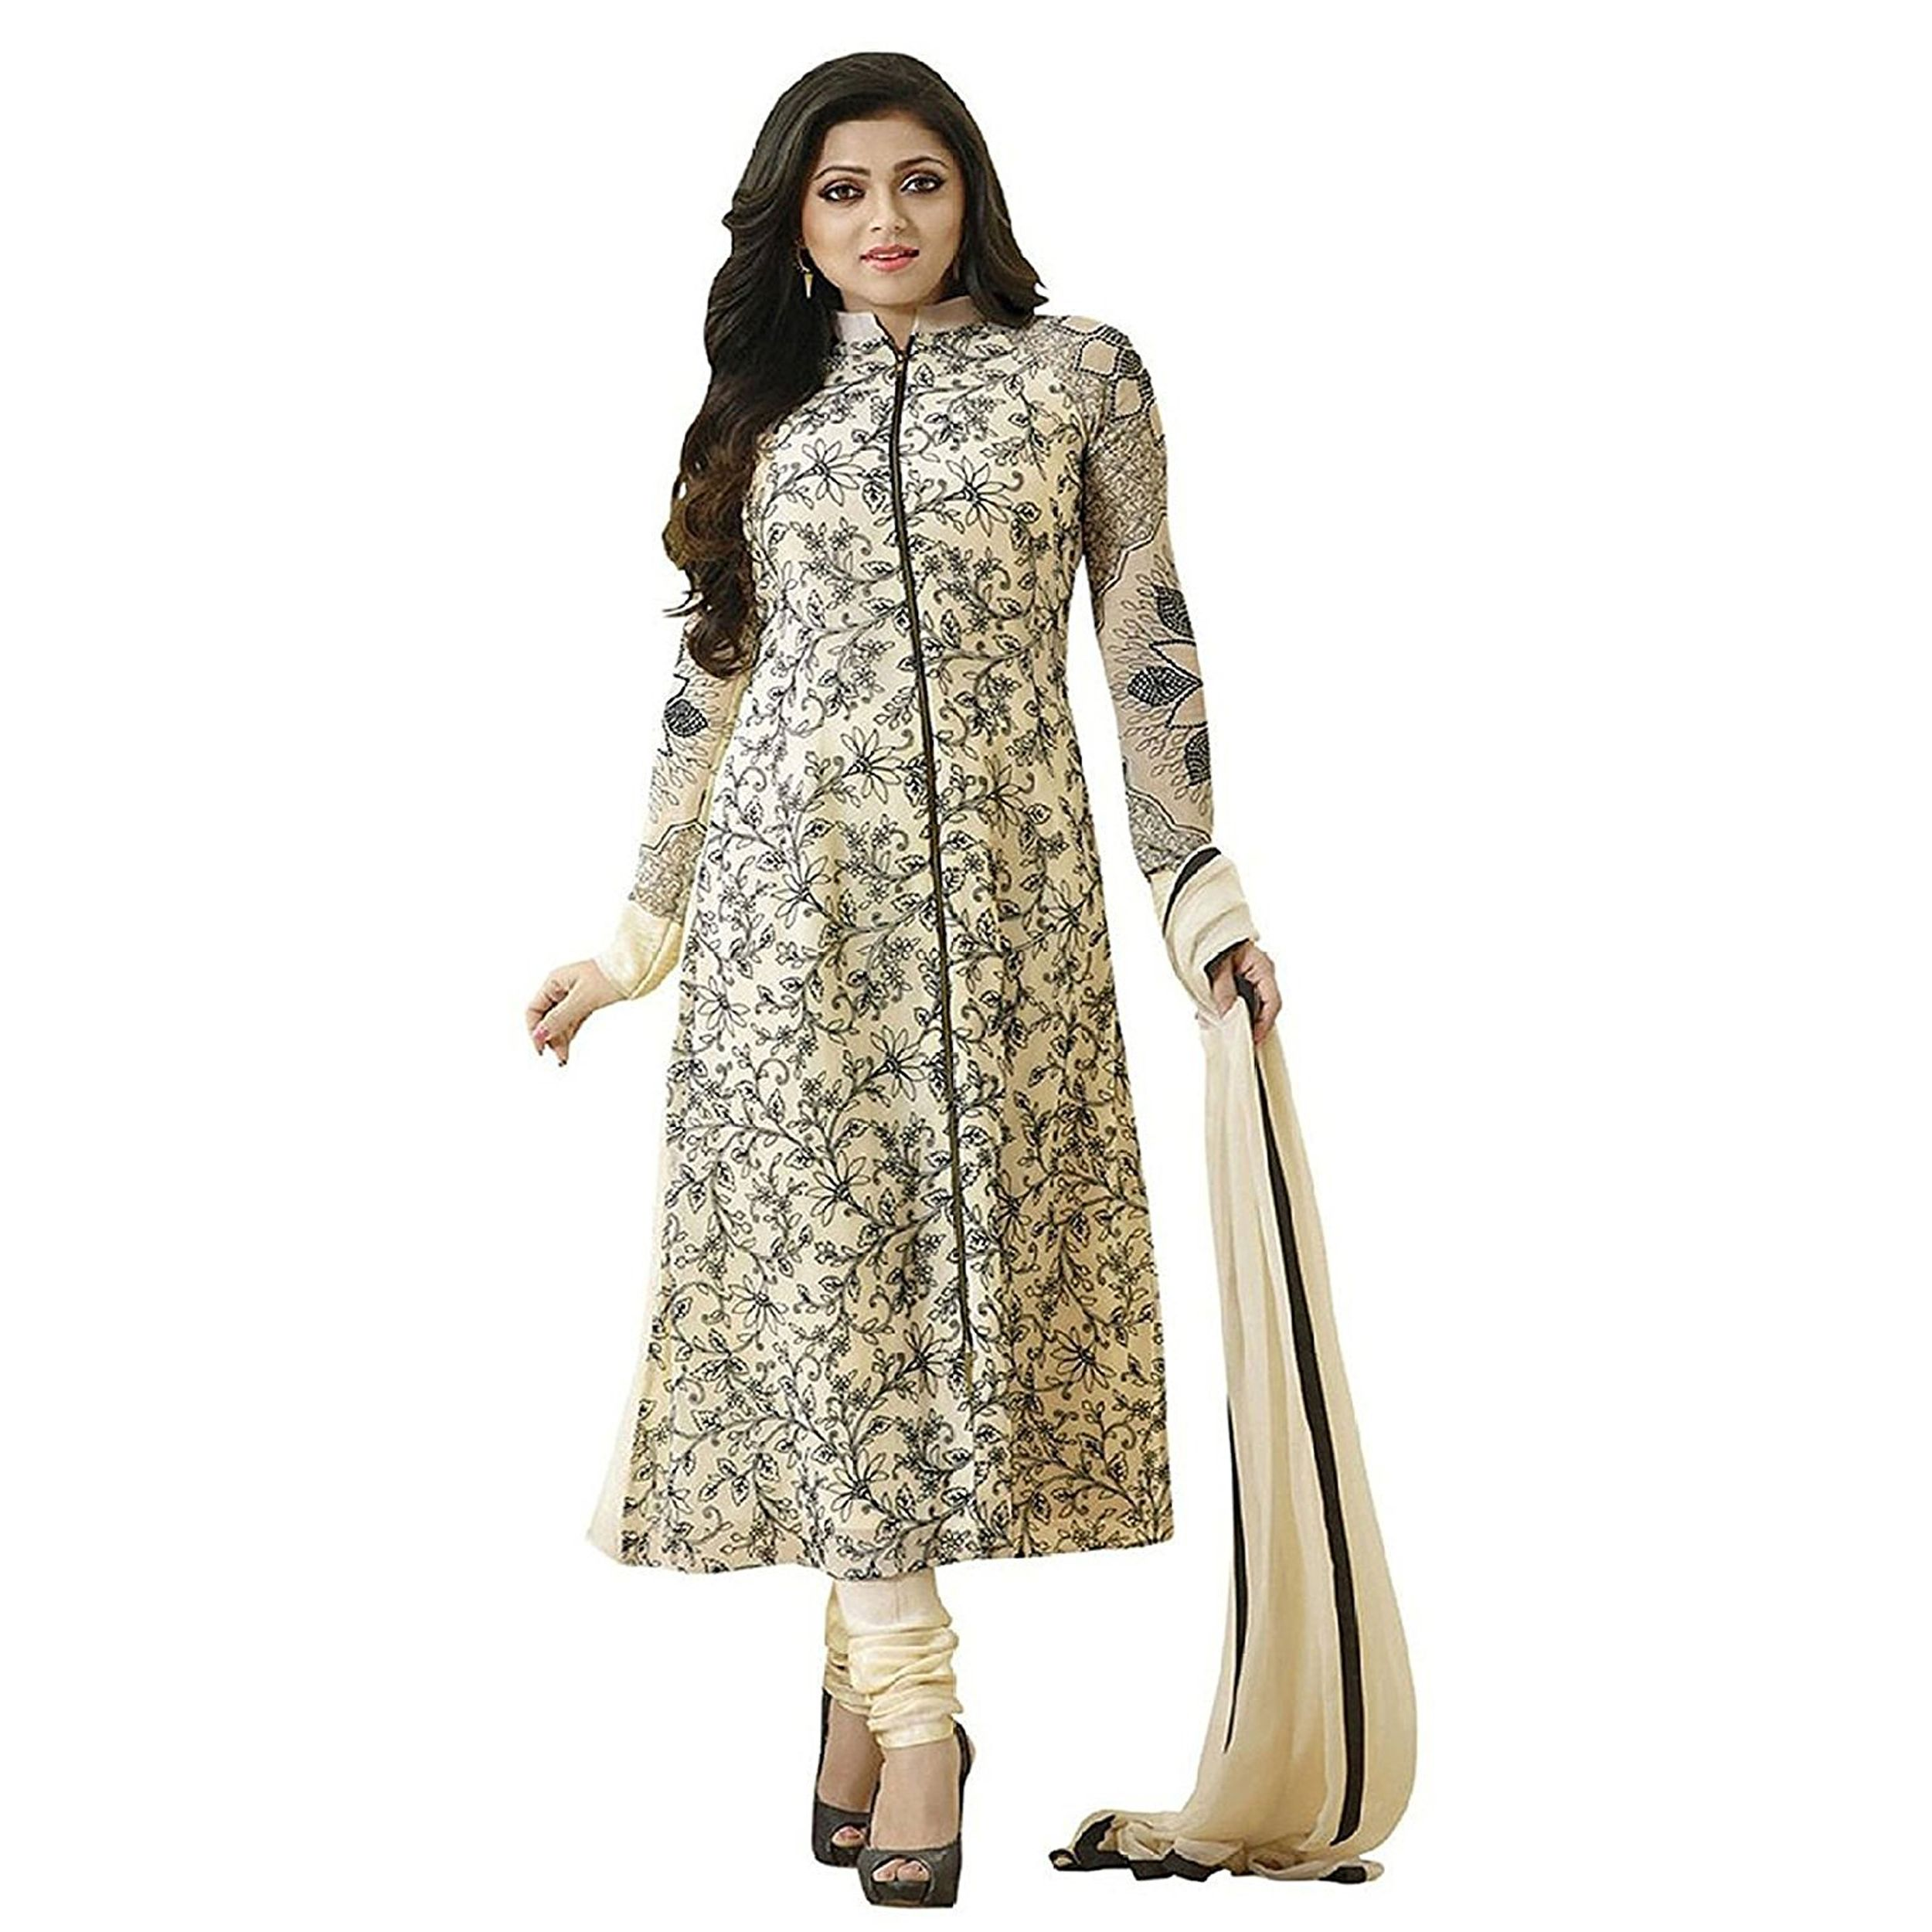 b302c80a17550 Latest Designer Cream Neck And Long Salwar Suit for women   girls party  wear For Girls For Specail Uses In wedding